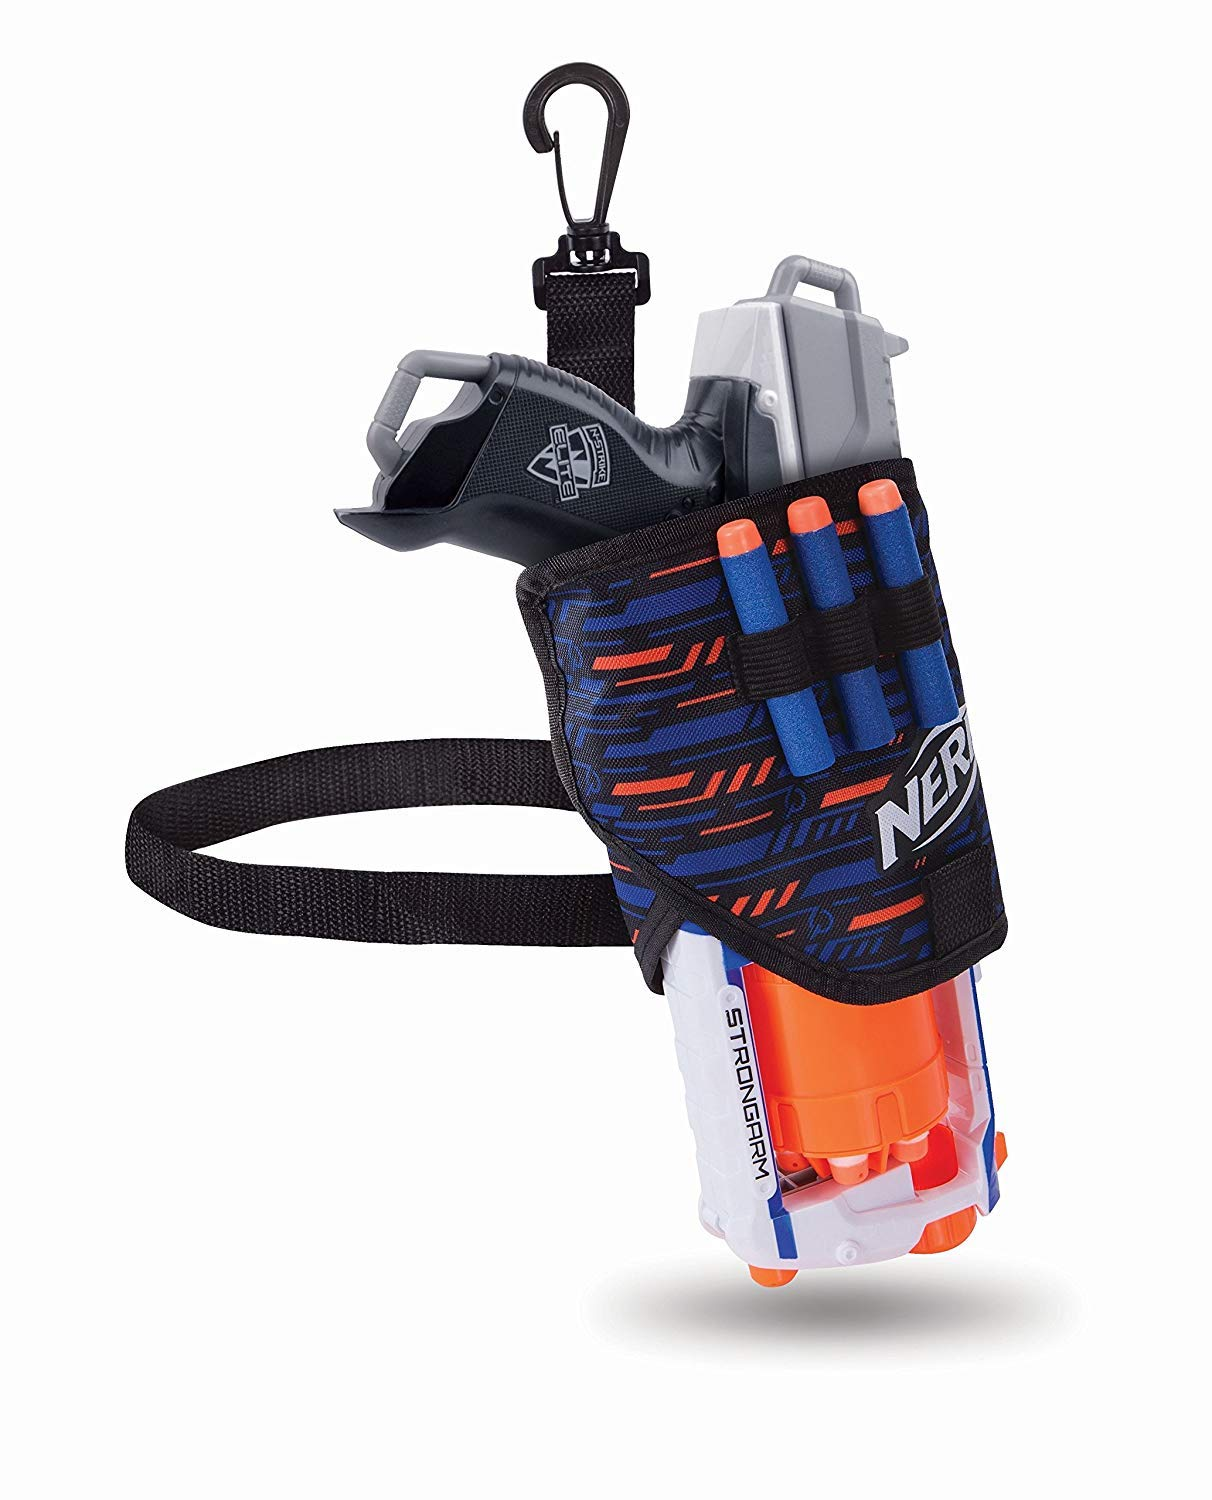 2 X Elite Hip Holster, One Size